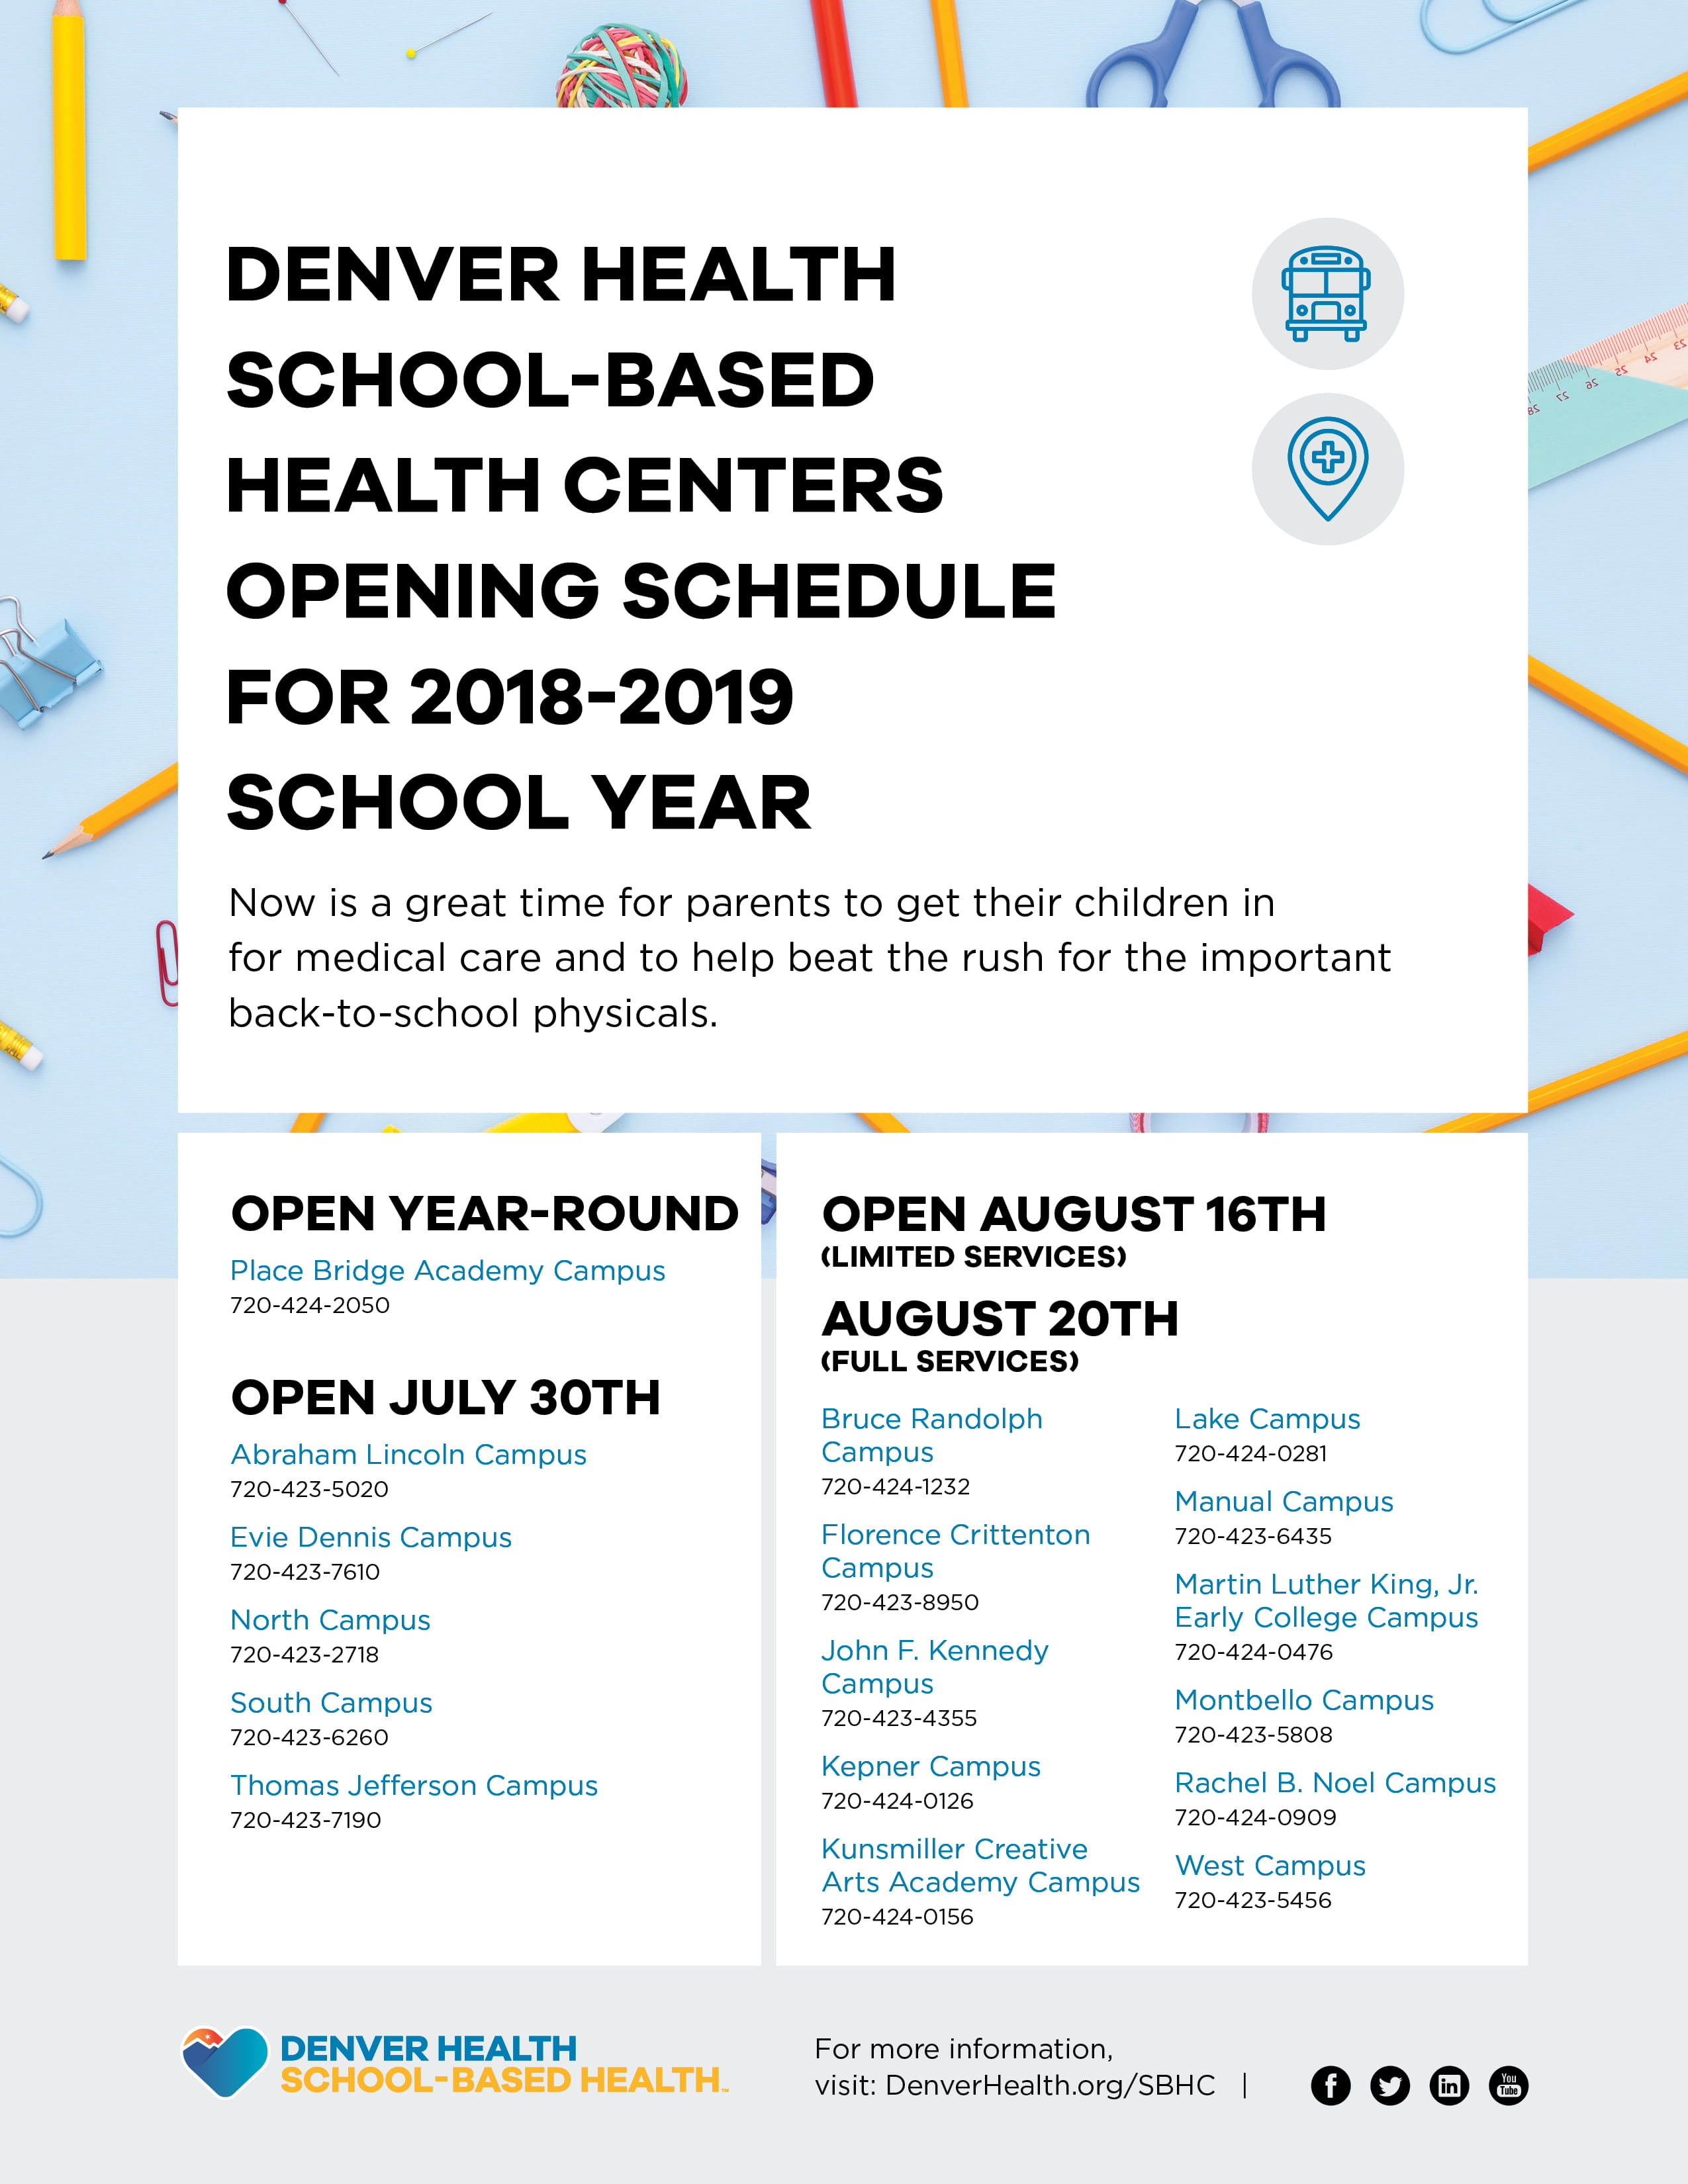 School based Health Centers Open for New School Year